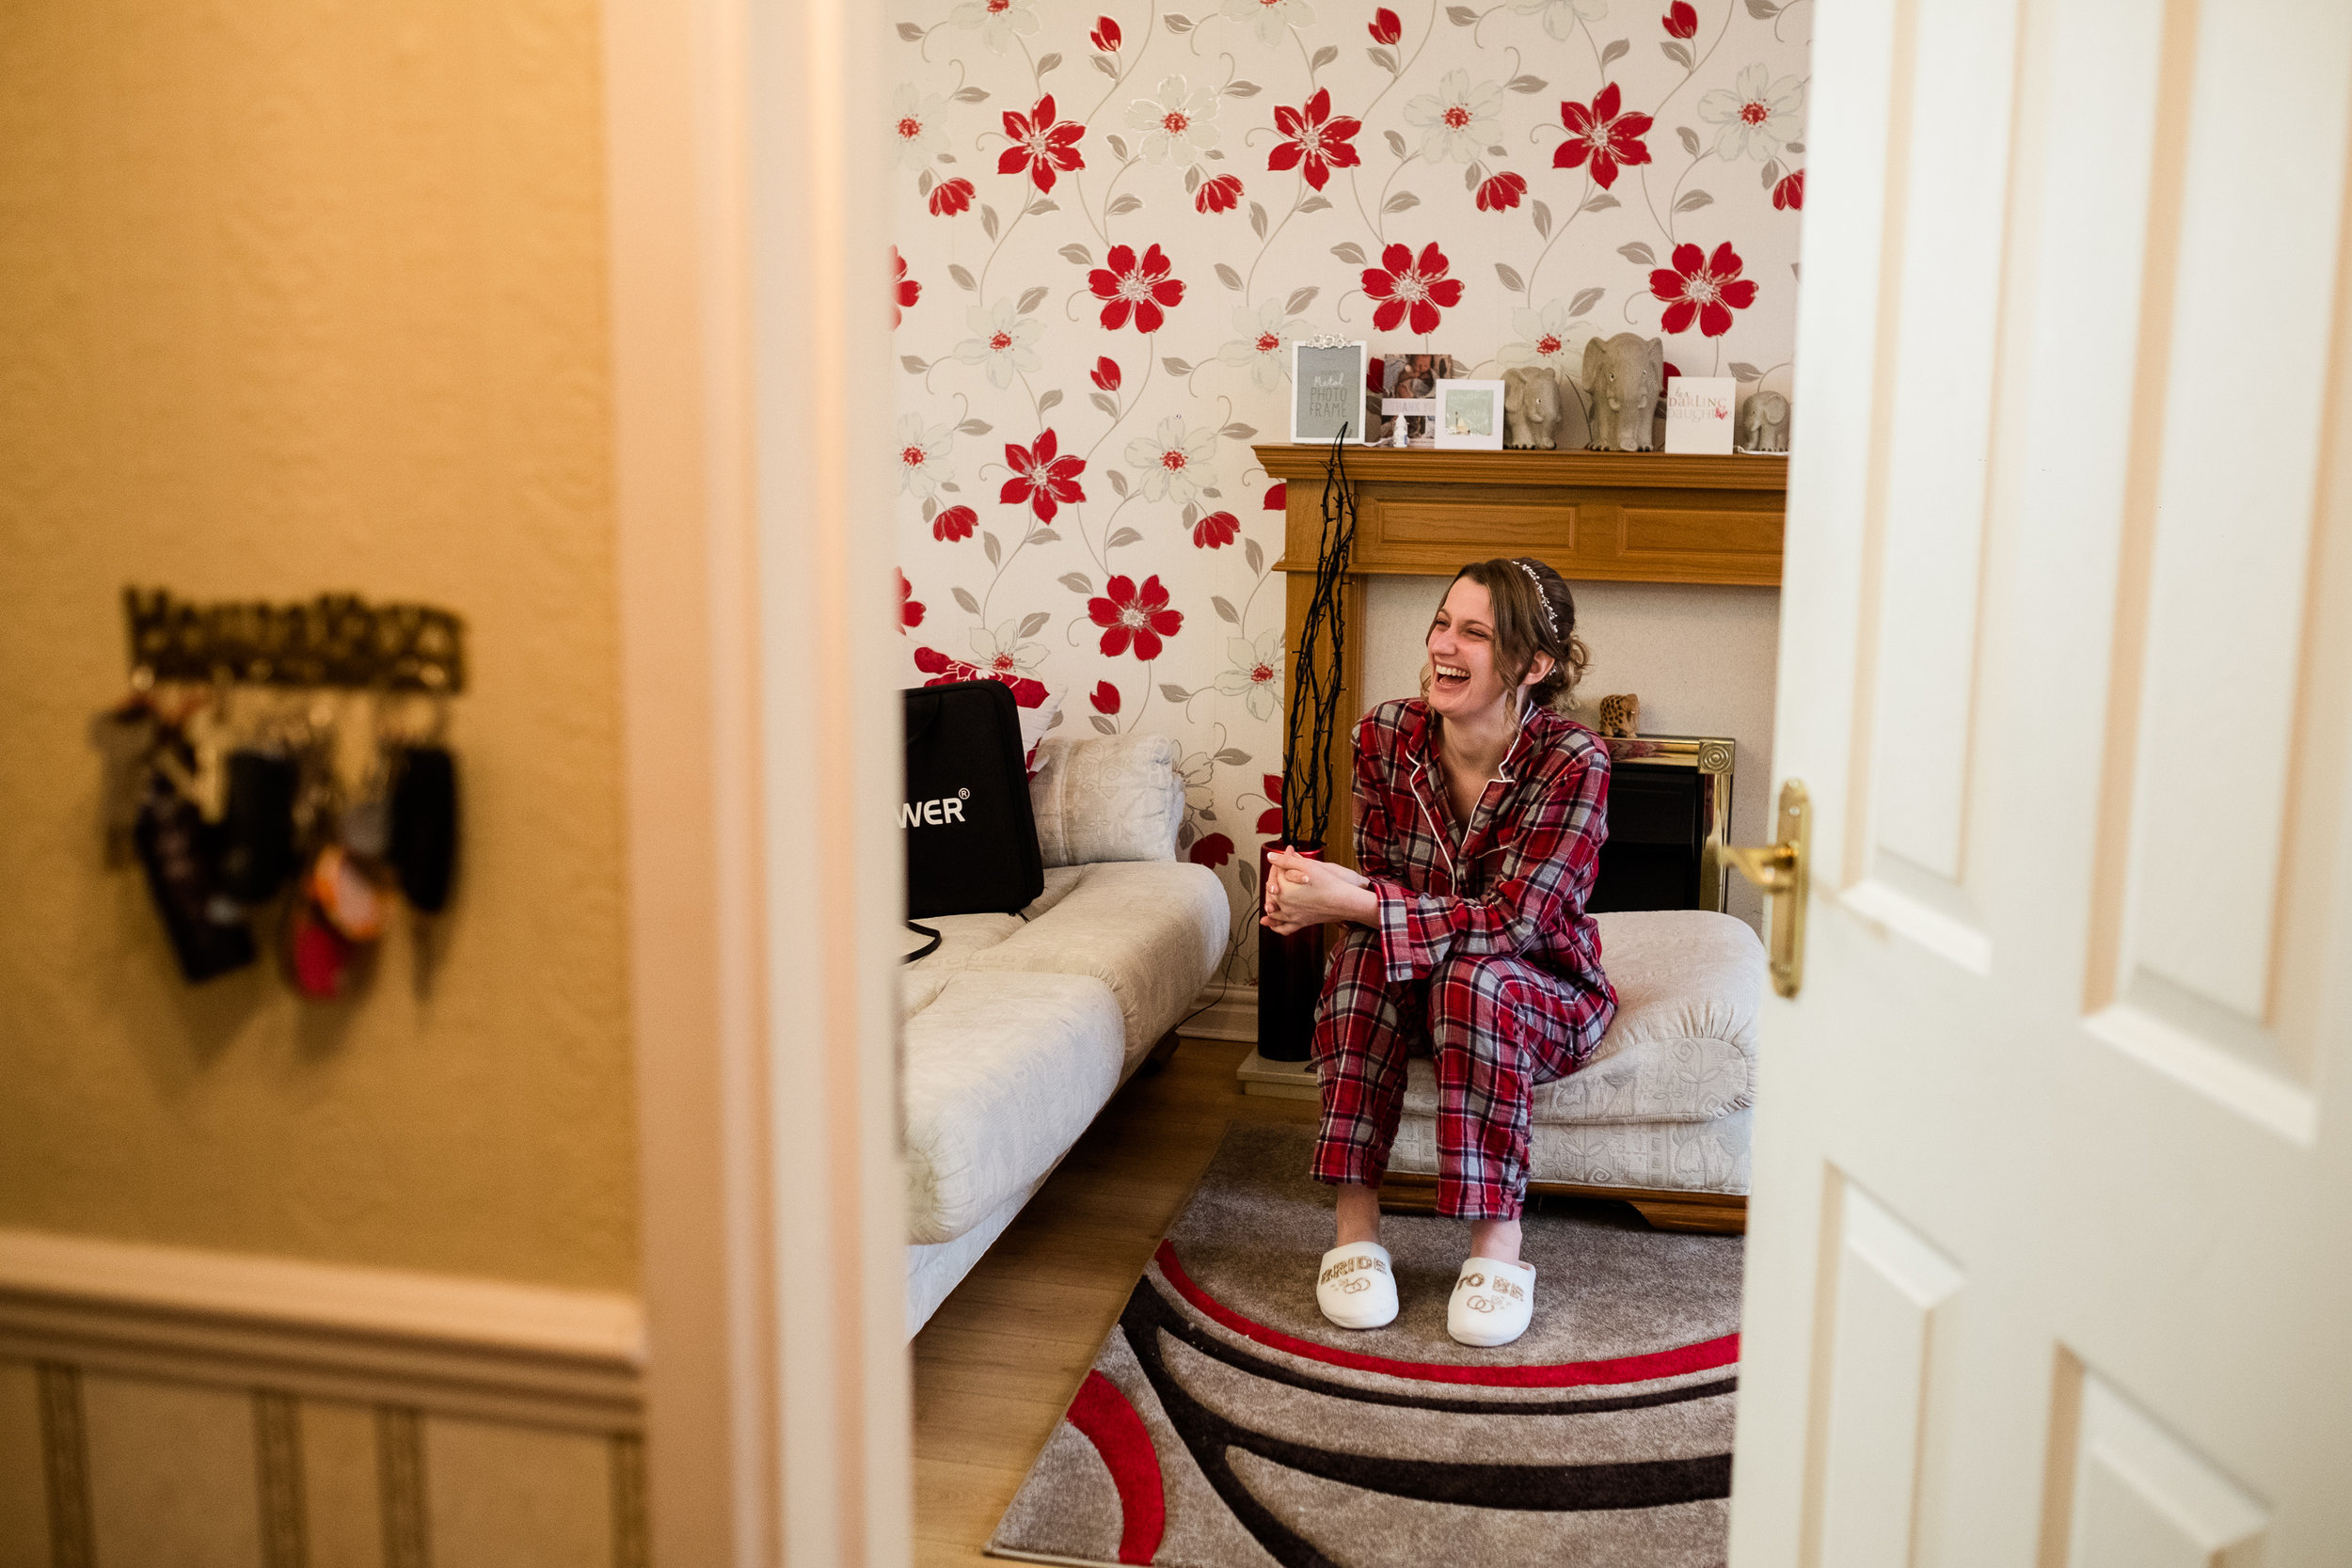 Birmingham Documentary Wedding Photography at New Hall, Sutton Coldfield Turkish Red Candid Reportage - Jenny Harper-2.jpg